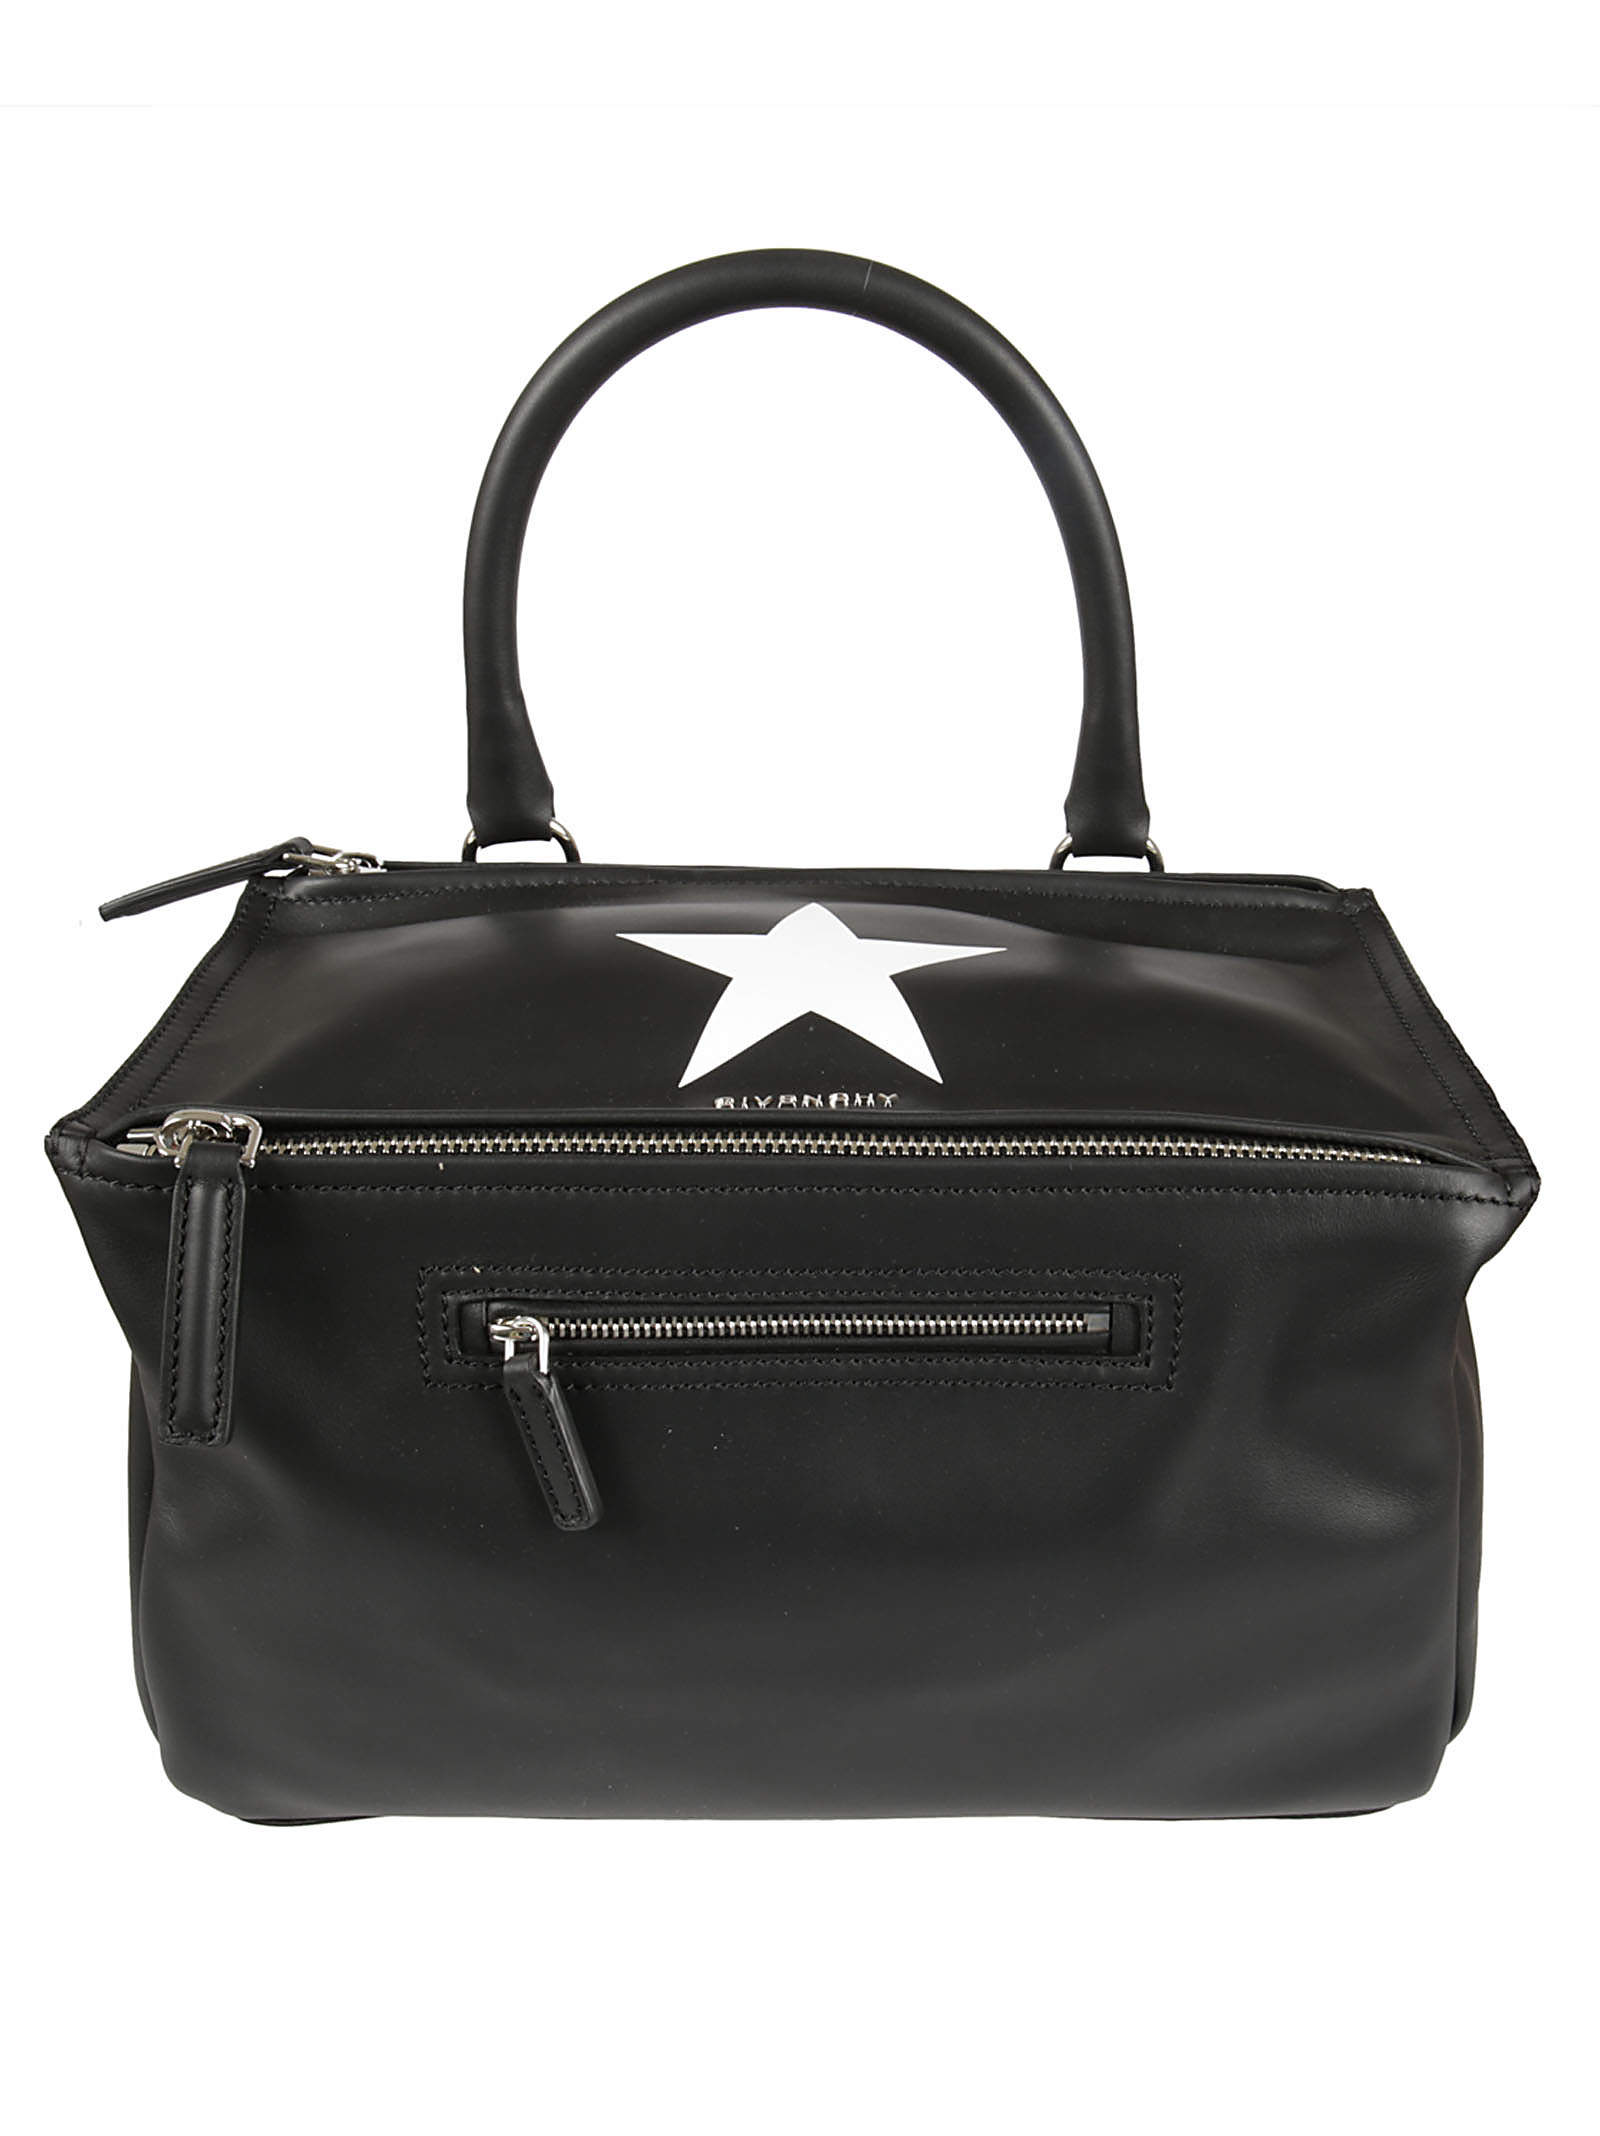 Givenchy Givenchy Pandora Medium Tote